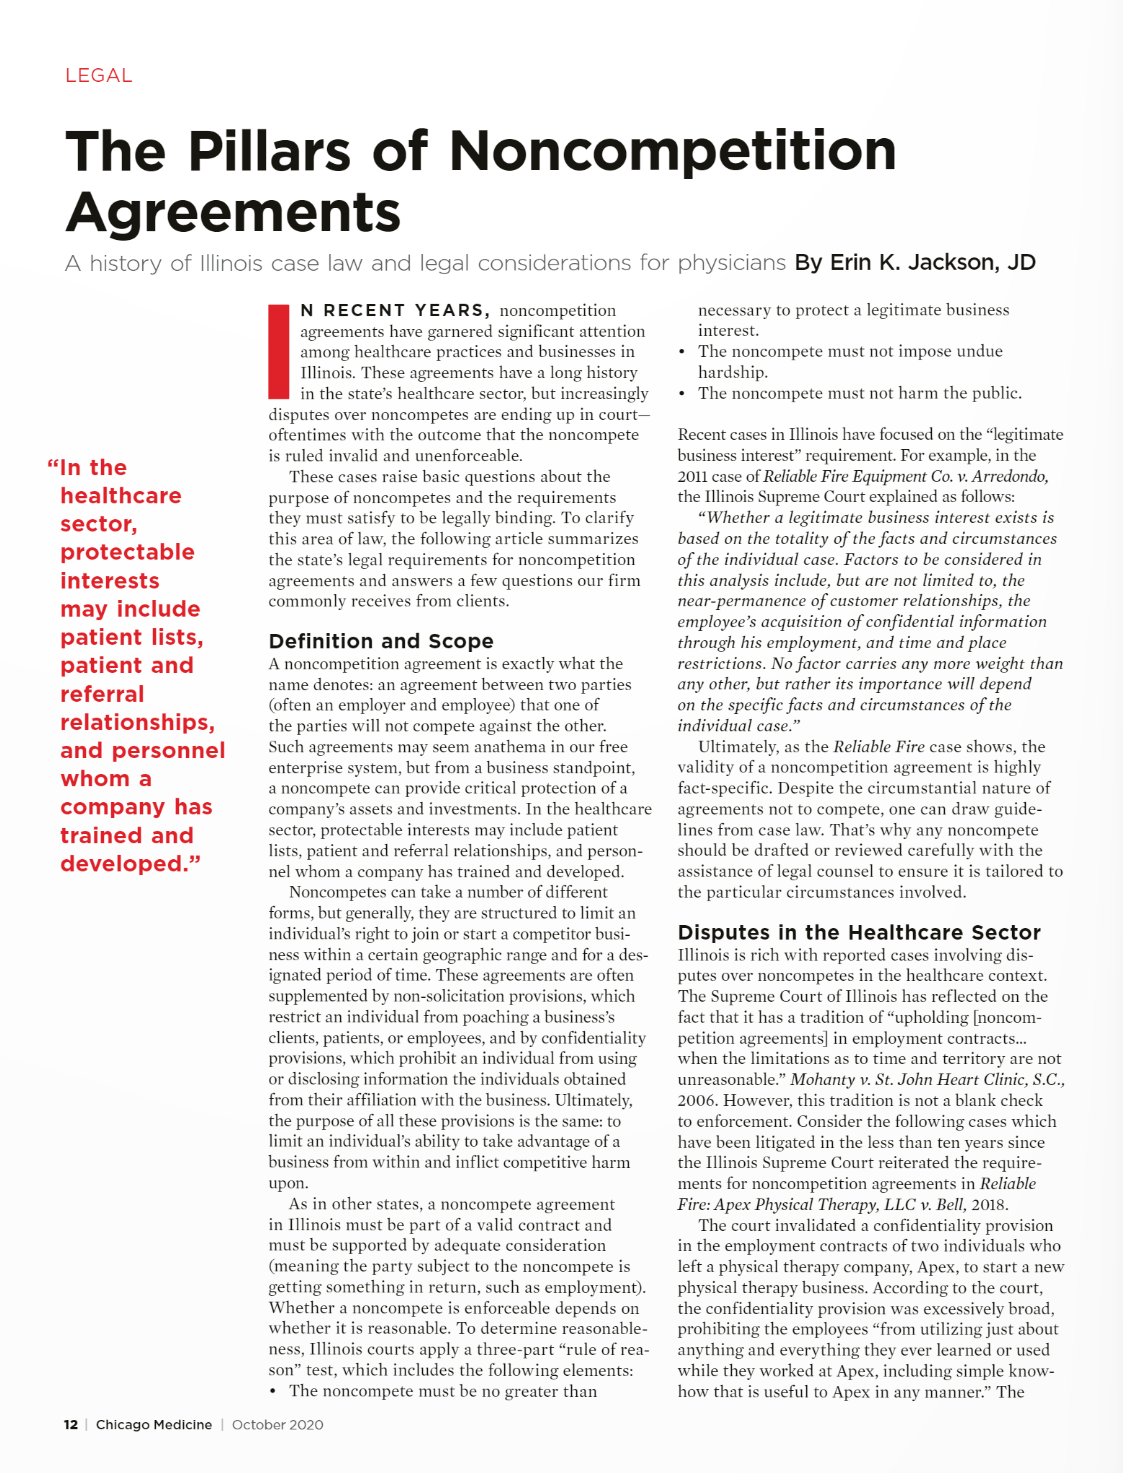 The Pillars of Noncompetition Agreements